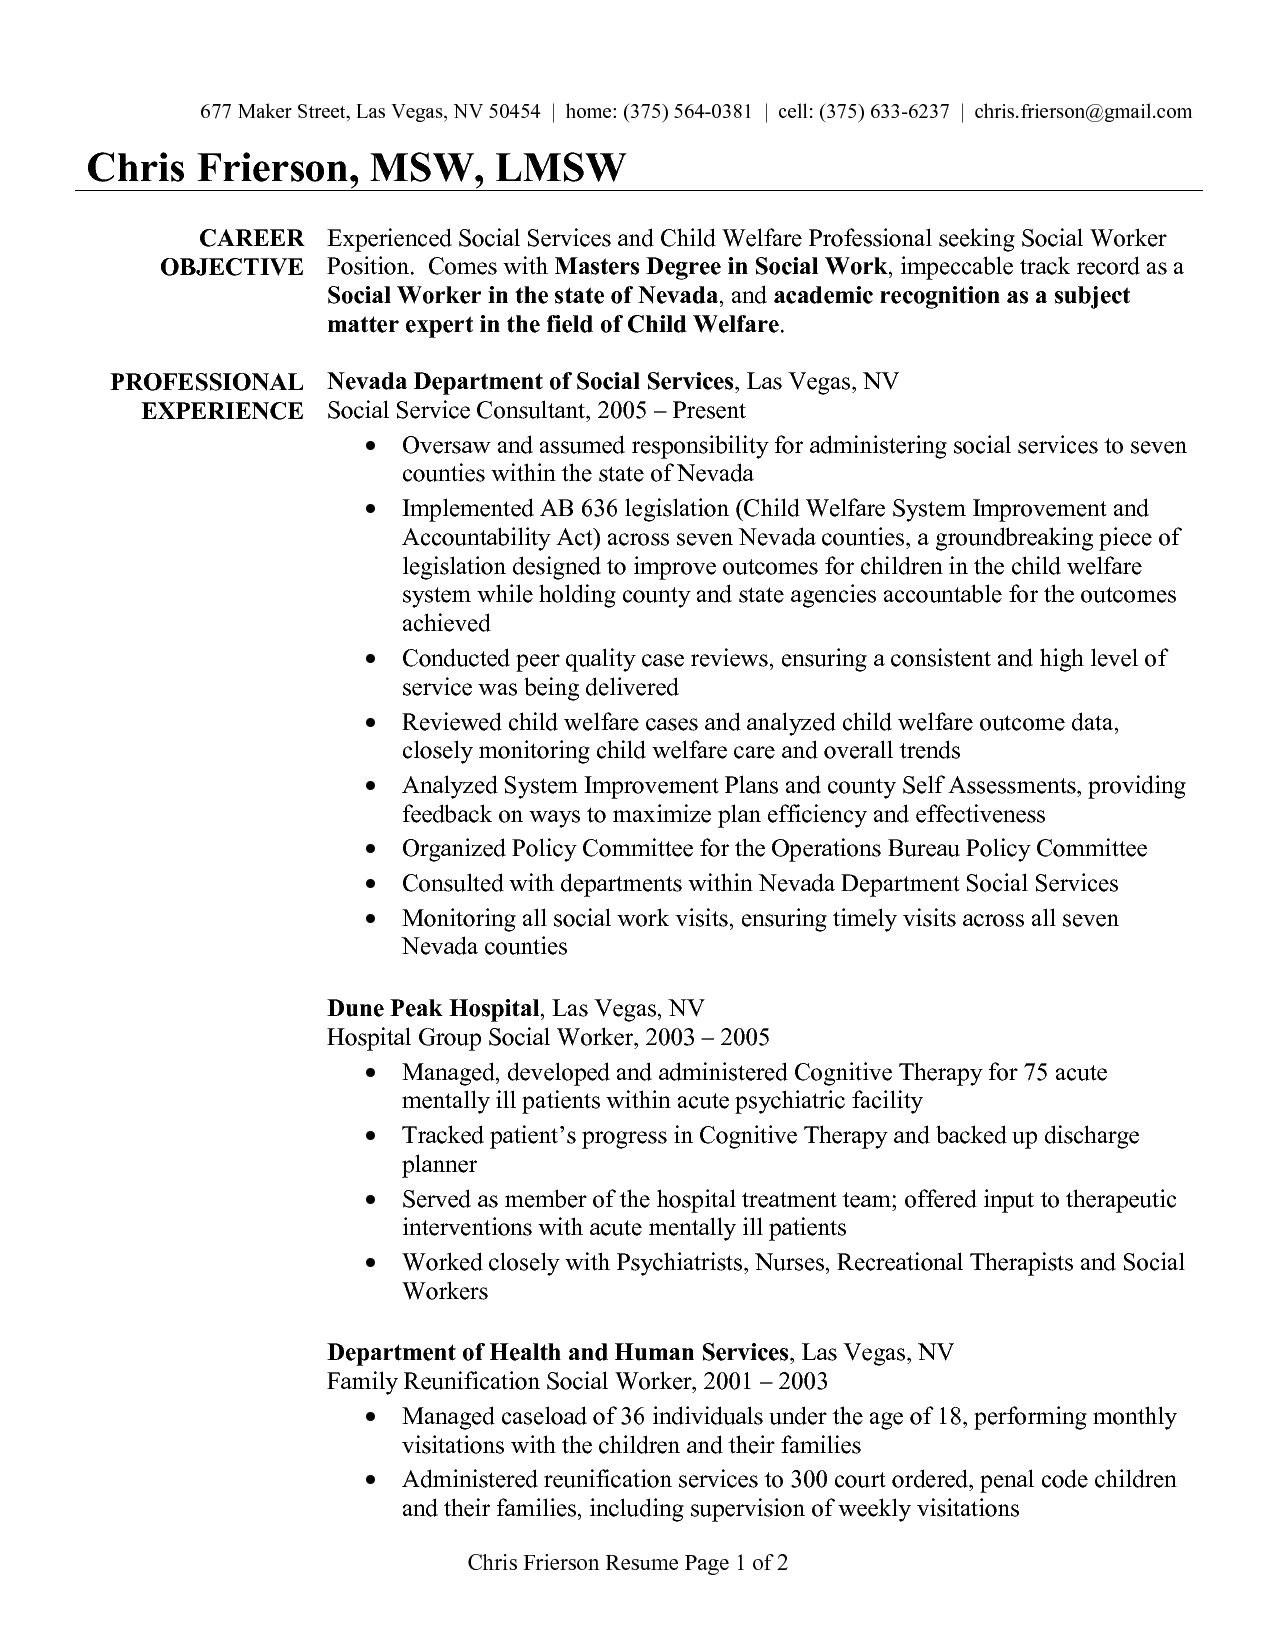 Work Resume Samples Social Work Resume Examples  Social Worker Resume Sample